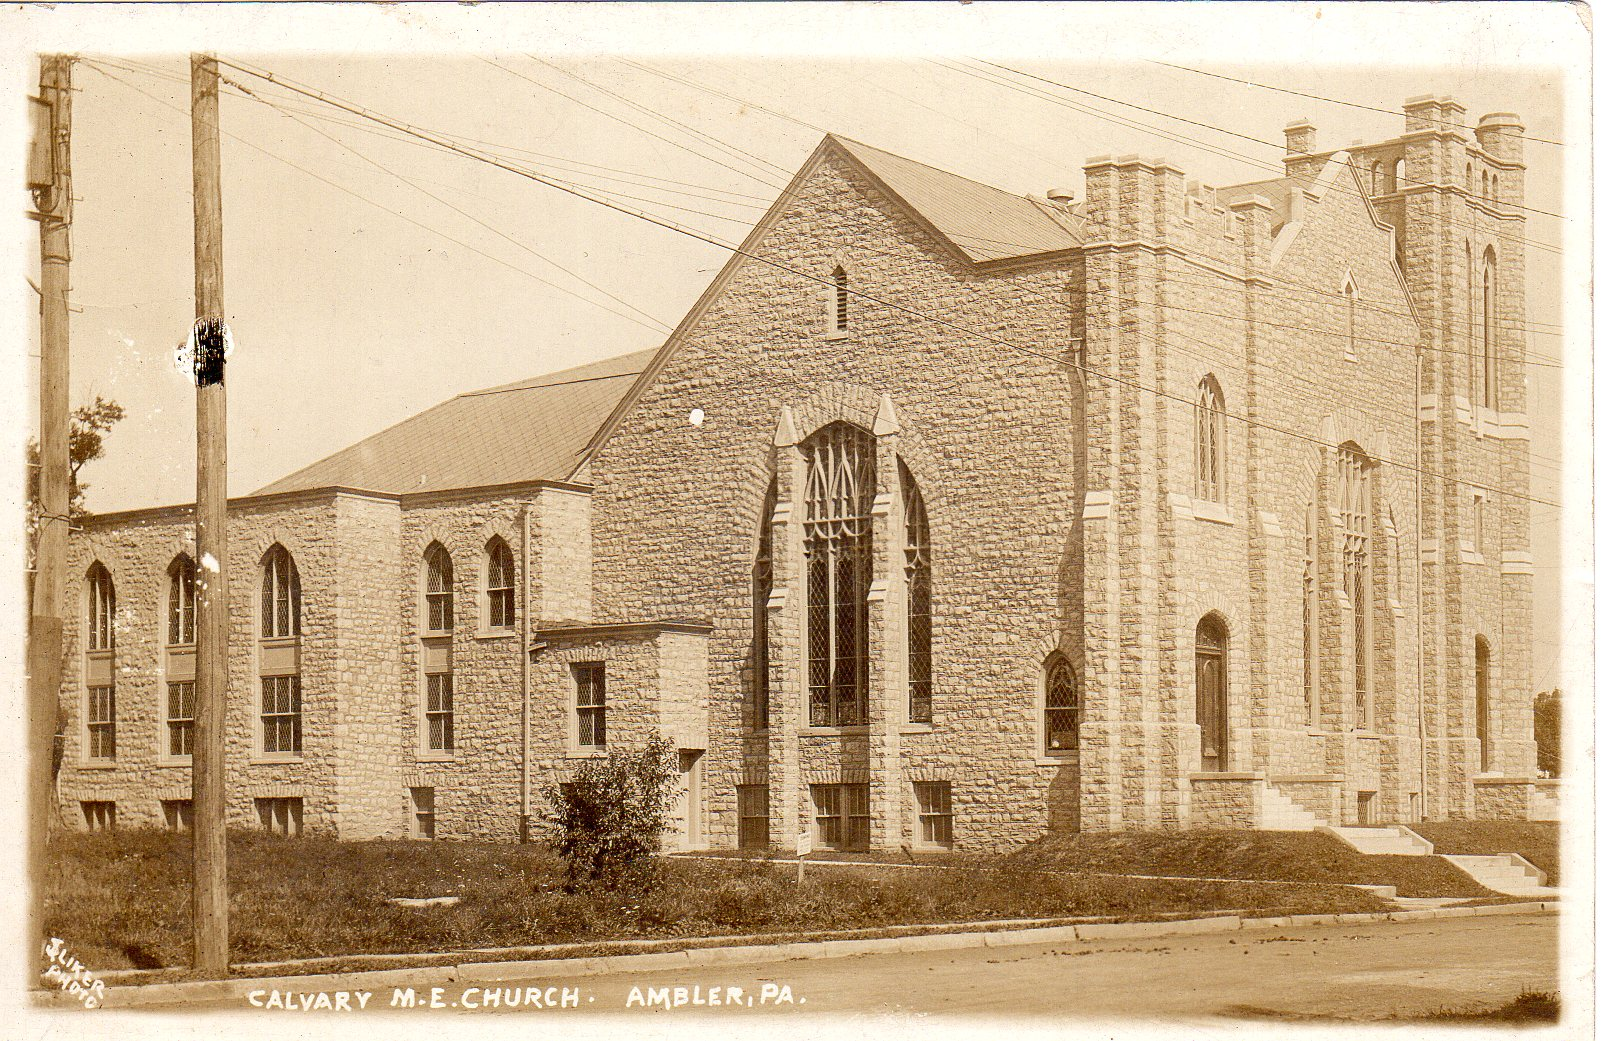 Post Card Collection (E Simon)_2682_29_Calvary M E Church, Ambler, Pa